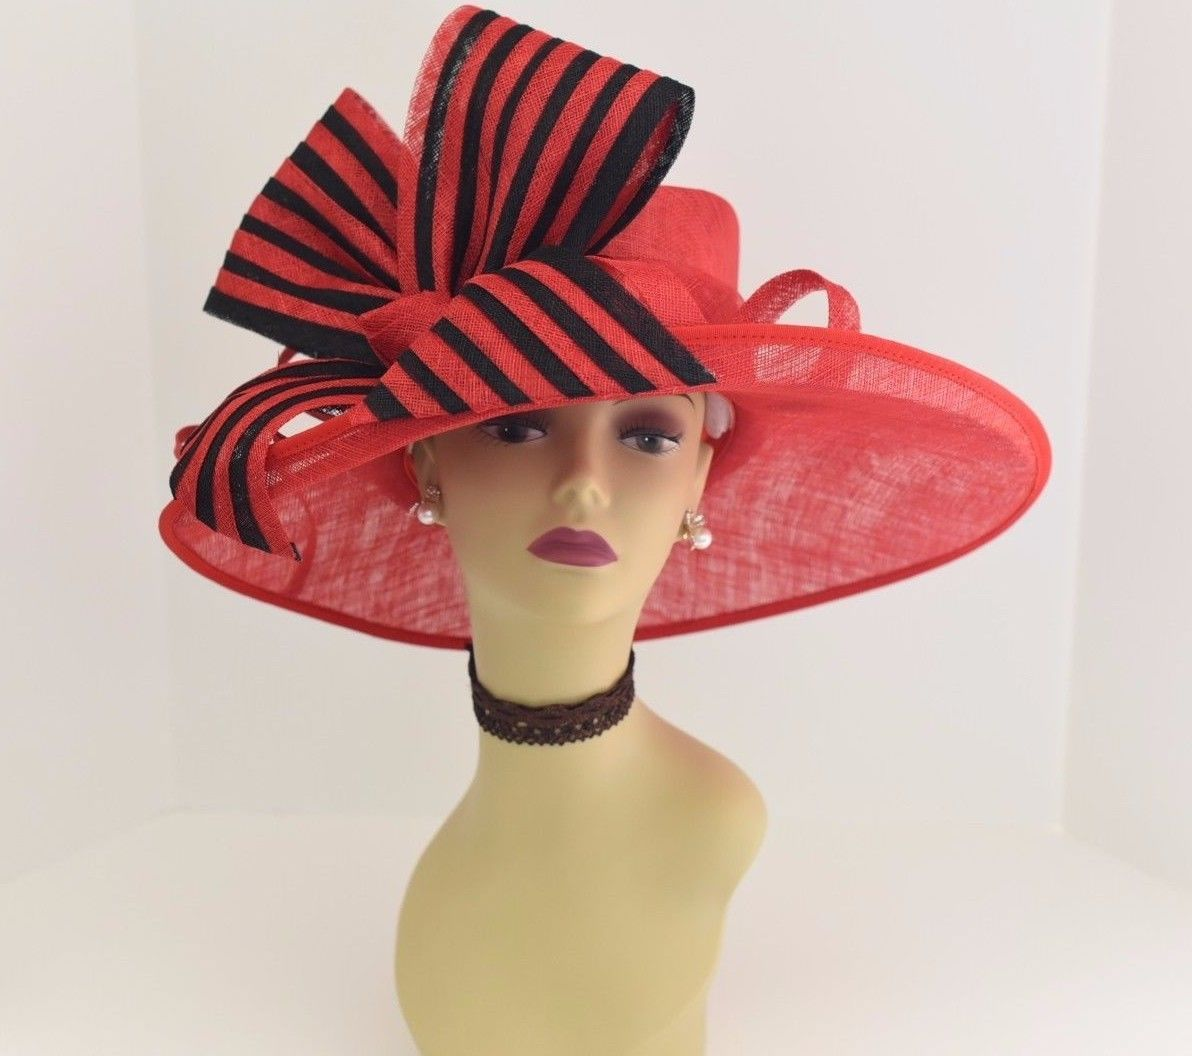 f2d0e11bf00 High Quality Kentucky Derby Church Wedding 3 Layers with Jumbo Bow Sinamay  Wide Brim hat ( Red Black ). The crown is decorated with a ...